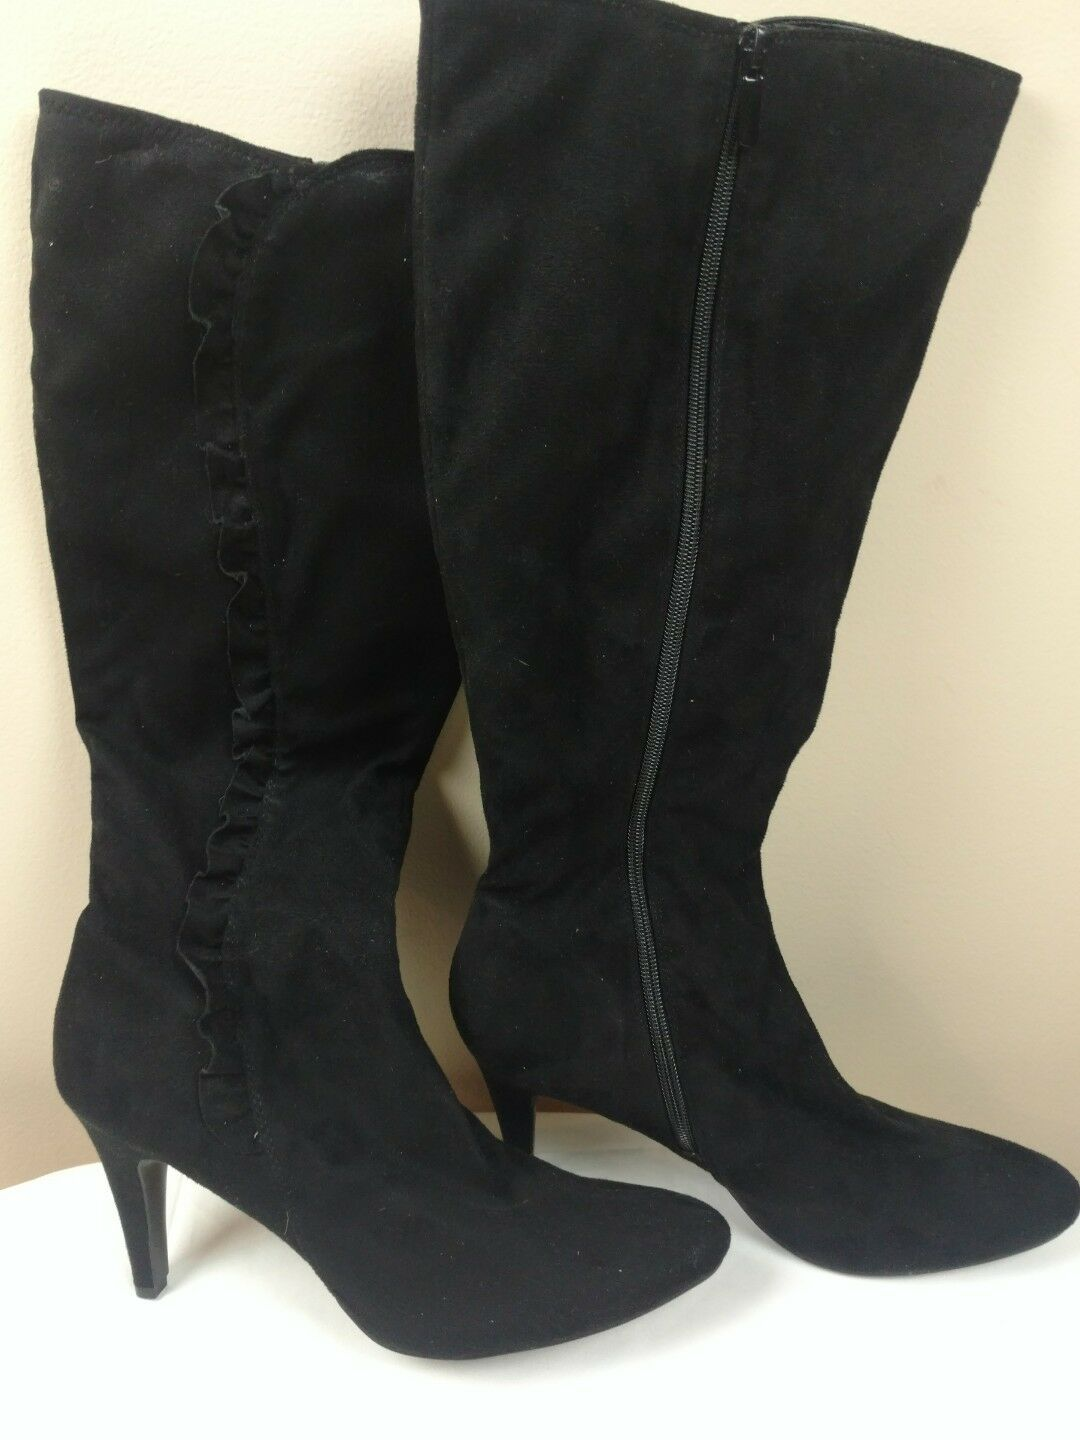 Women's Jaclyn Smith Black Knee High Boots size 10M